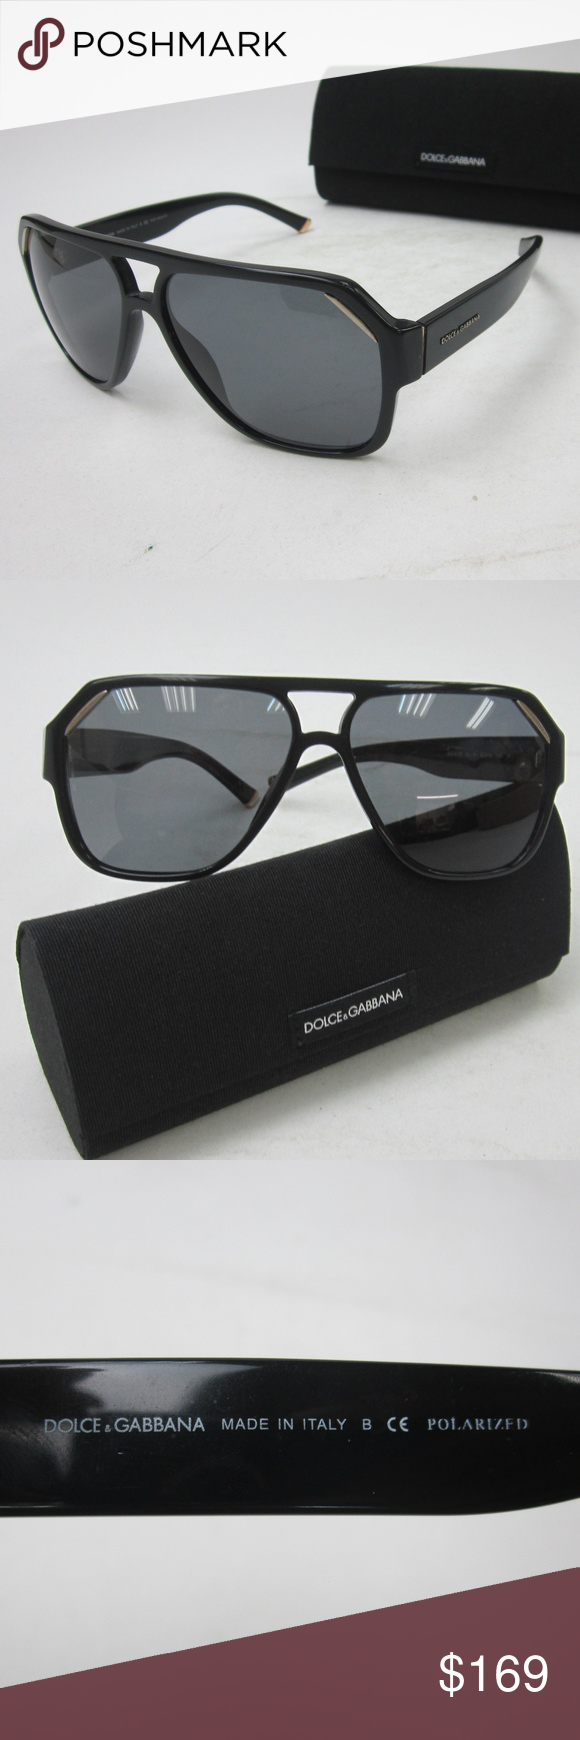 4c7ed00dafe6 Dolce   Gabbana DG4138 Men s Sunglasses OLN273 100% AUTHENTIC! Made in  Italy!